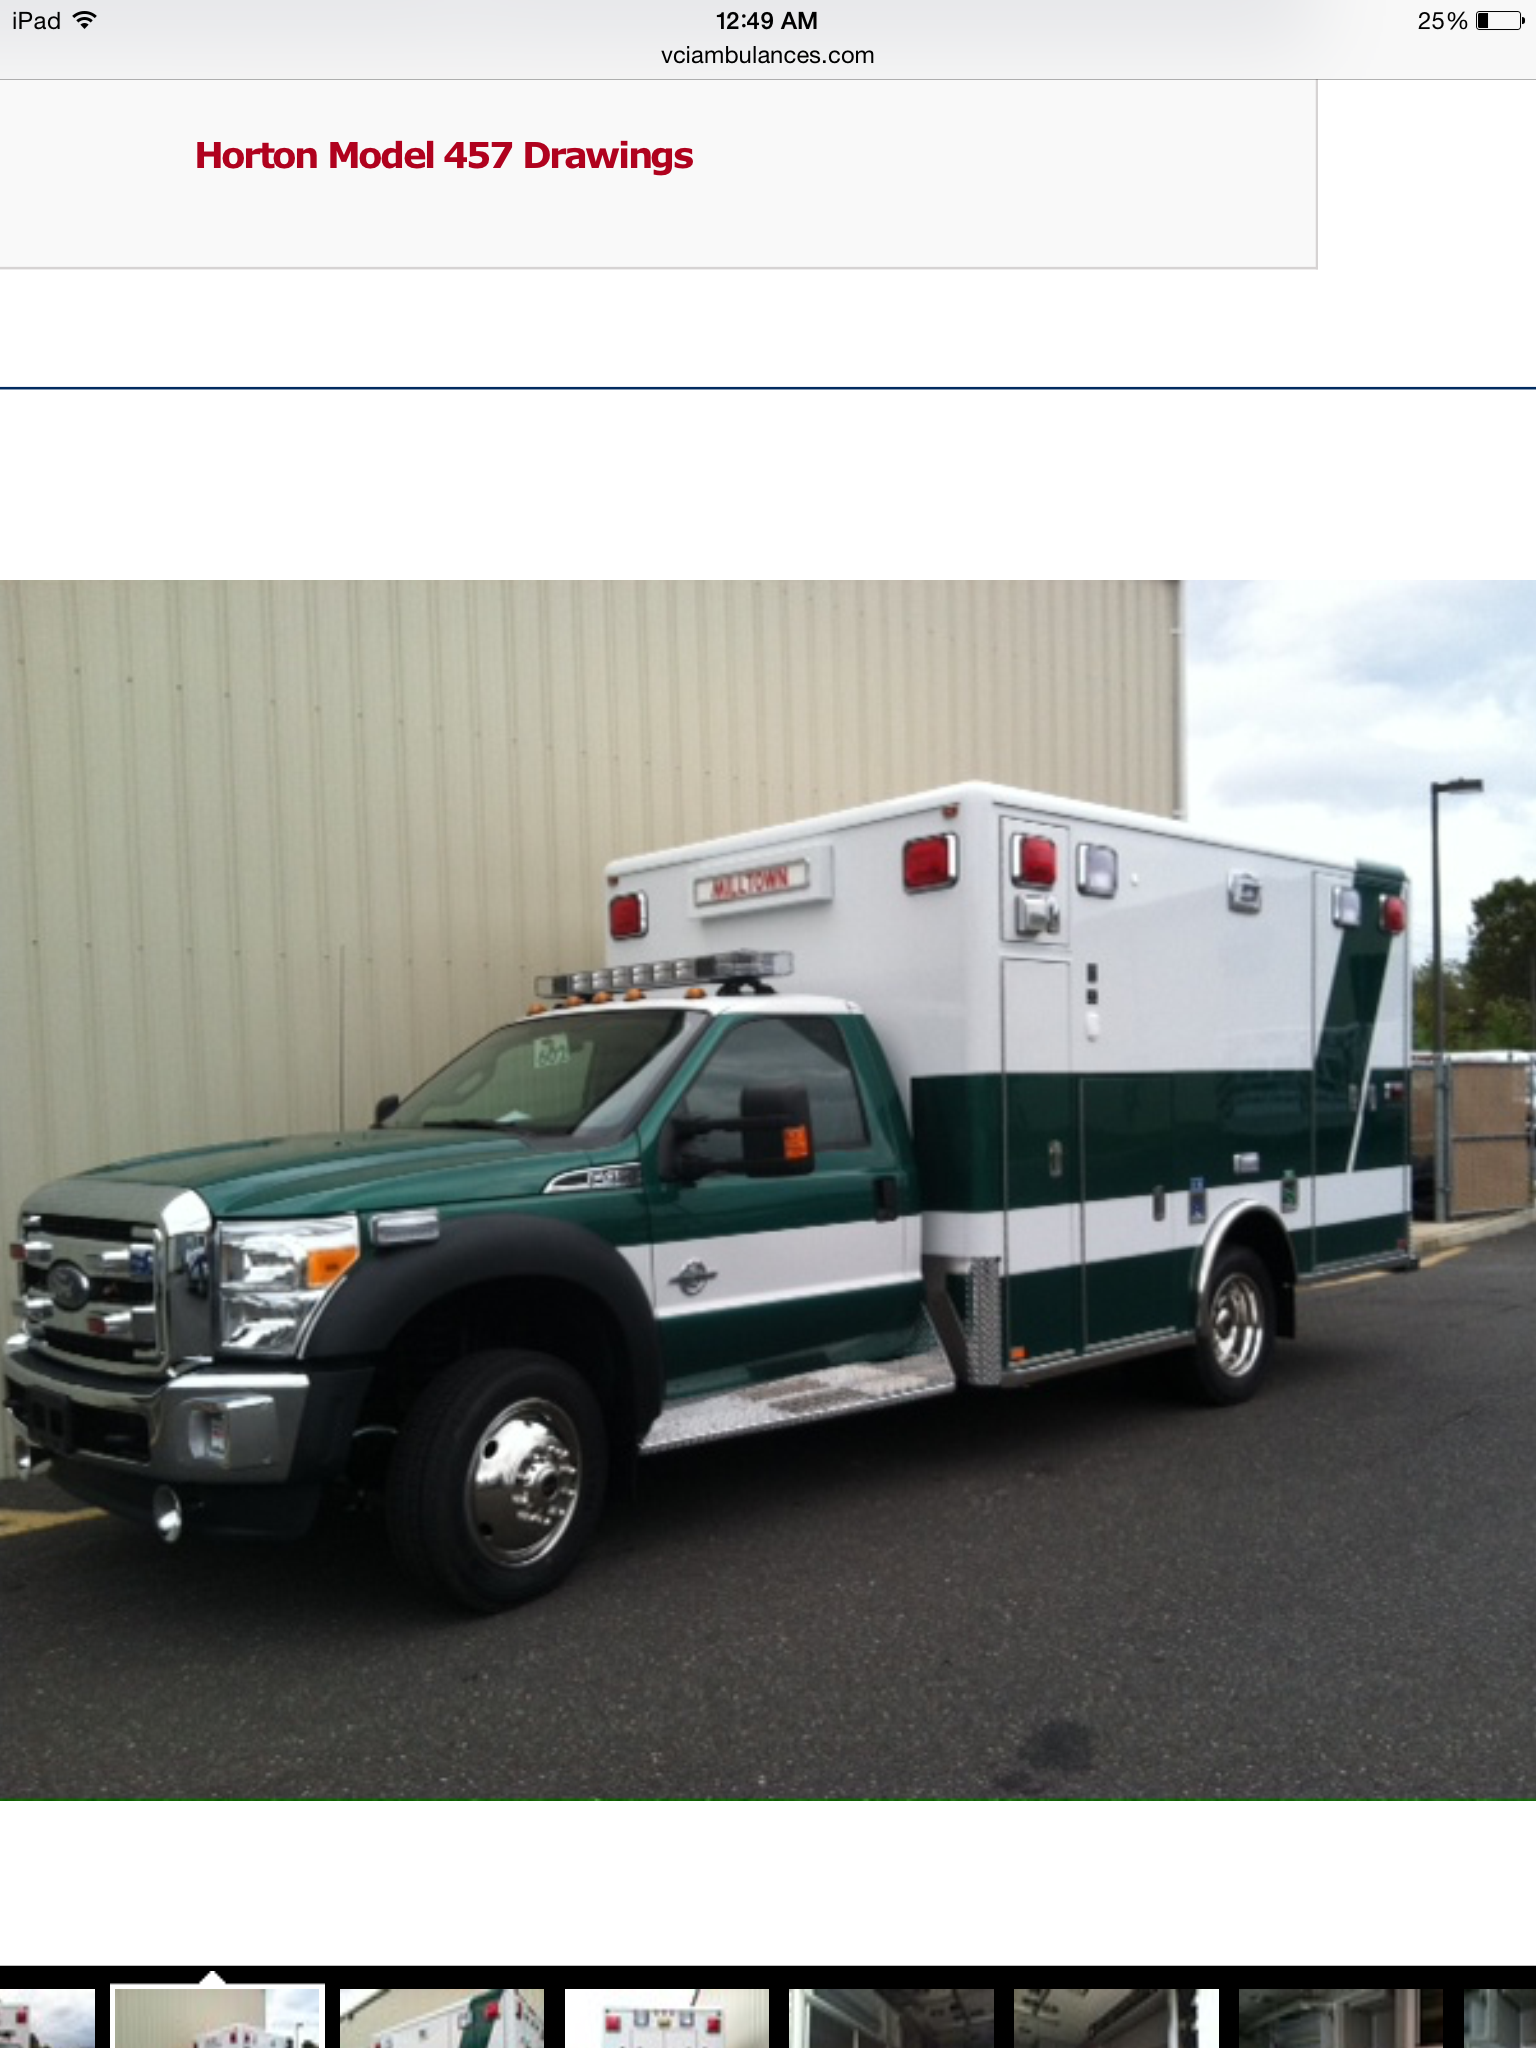 Pin by Smiller70 on Ambulance/EMS Ford ambulance, Fire